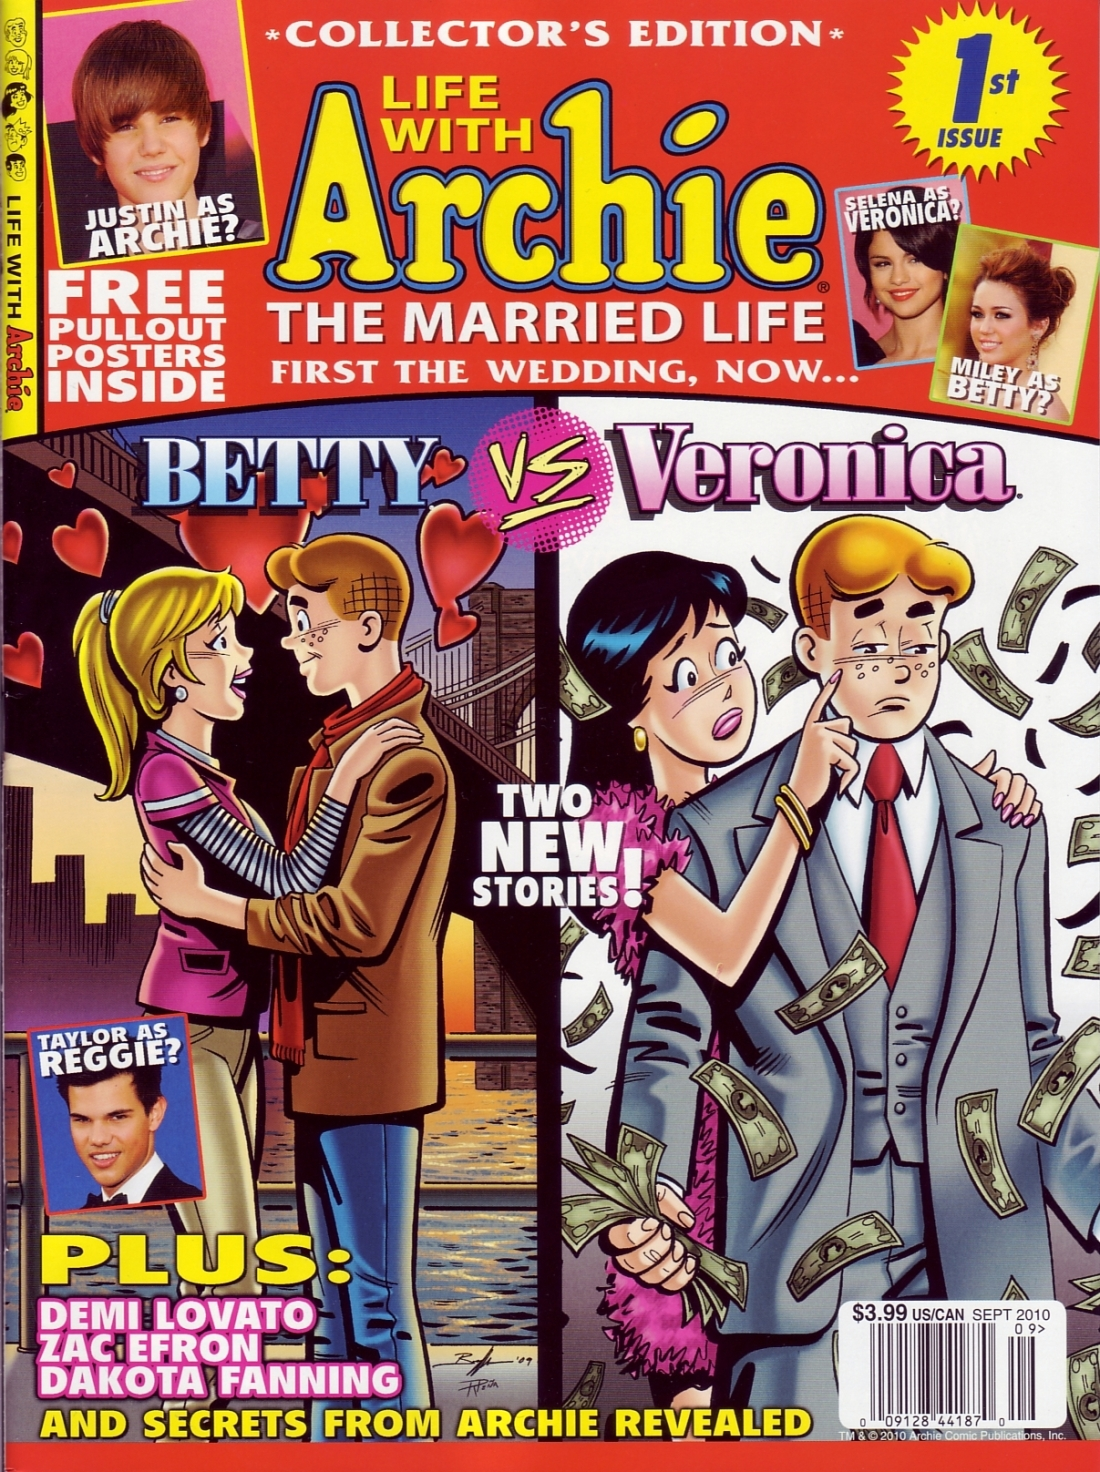 Life with Archi 1 cover